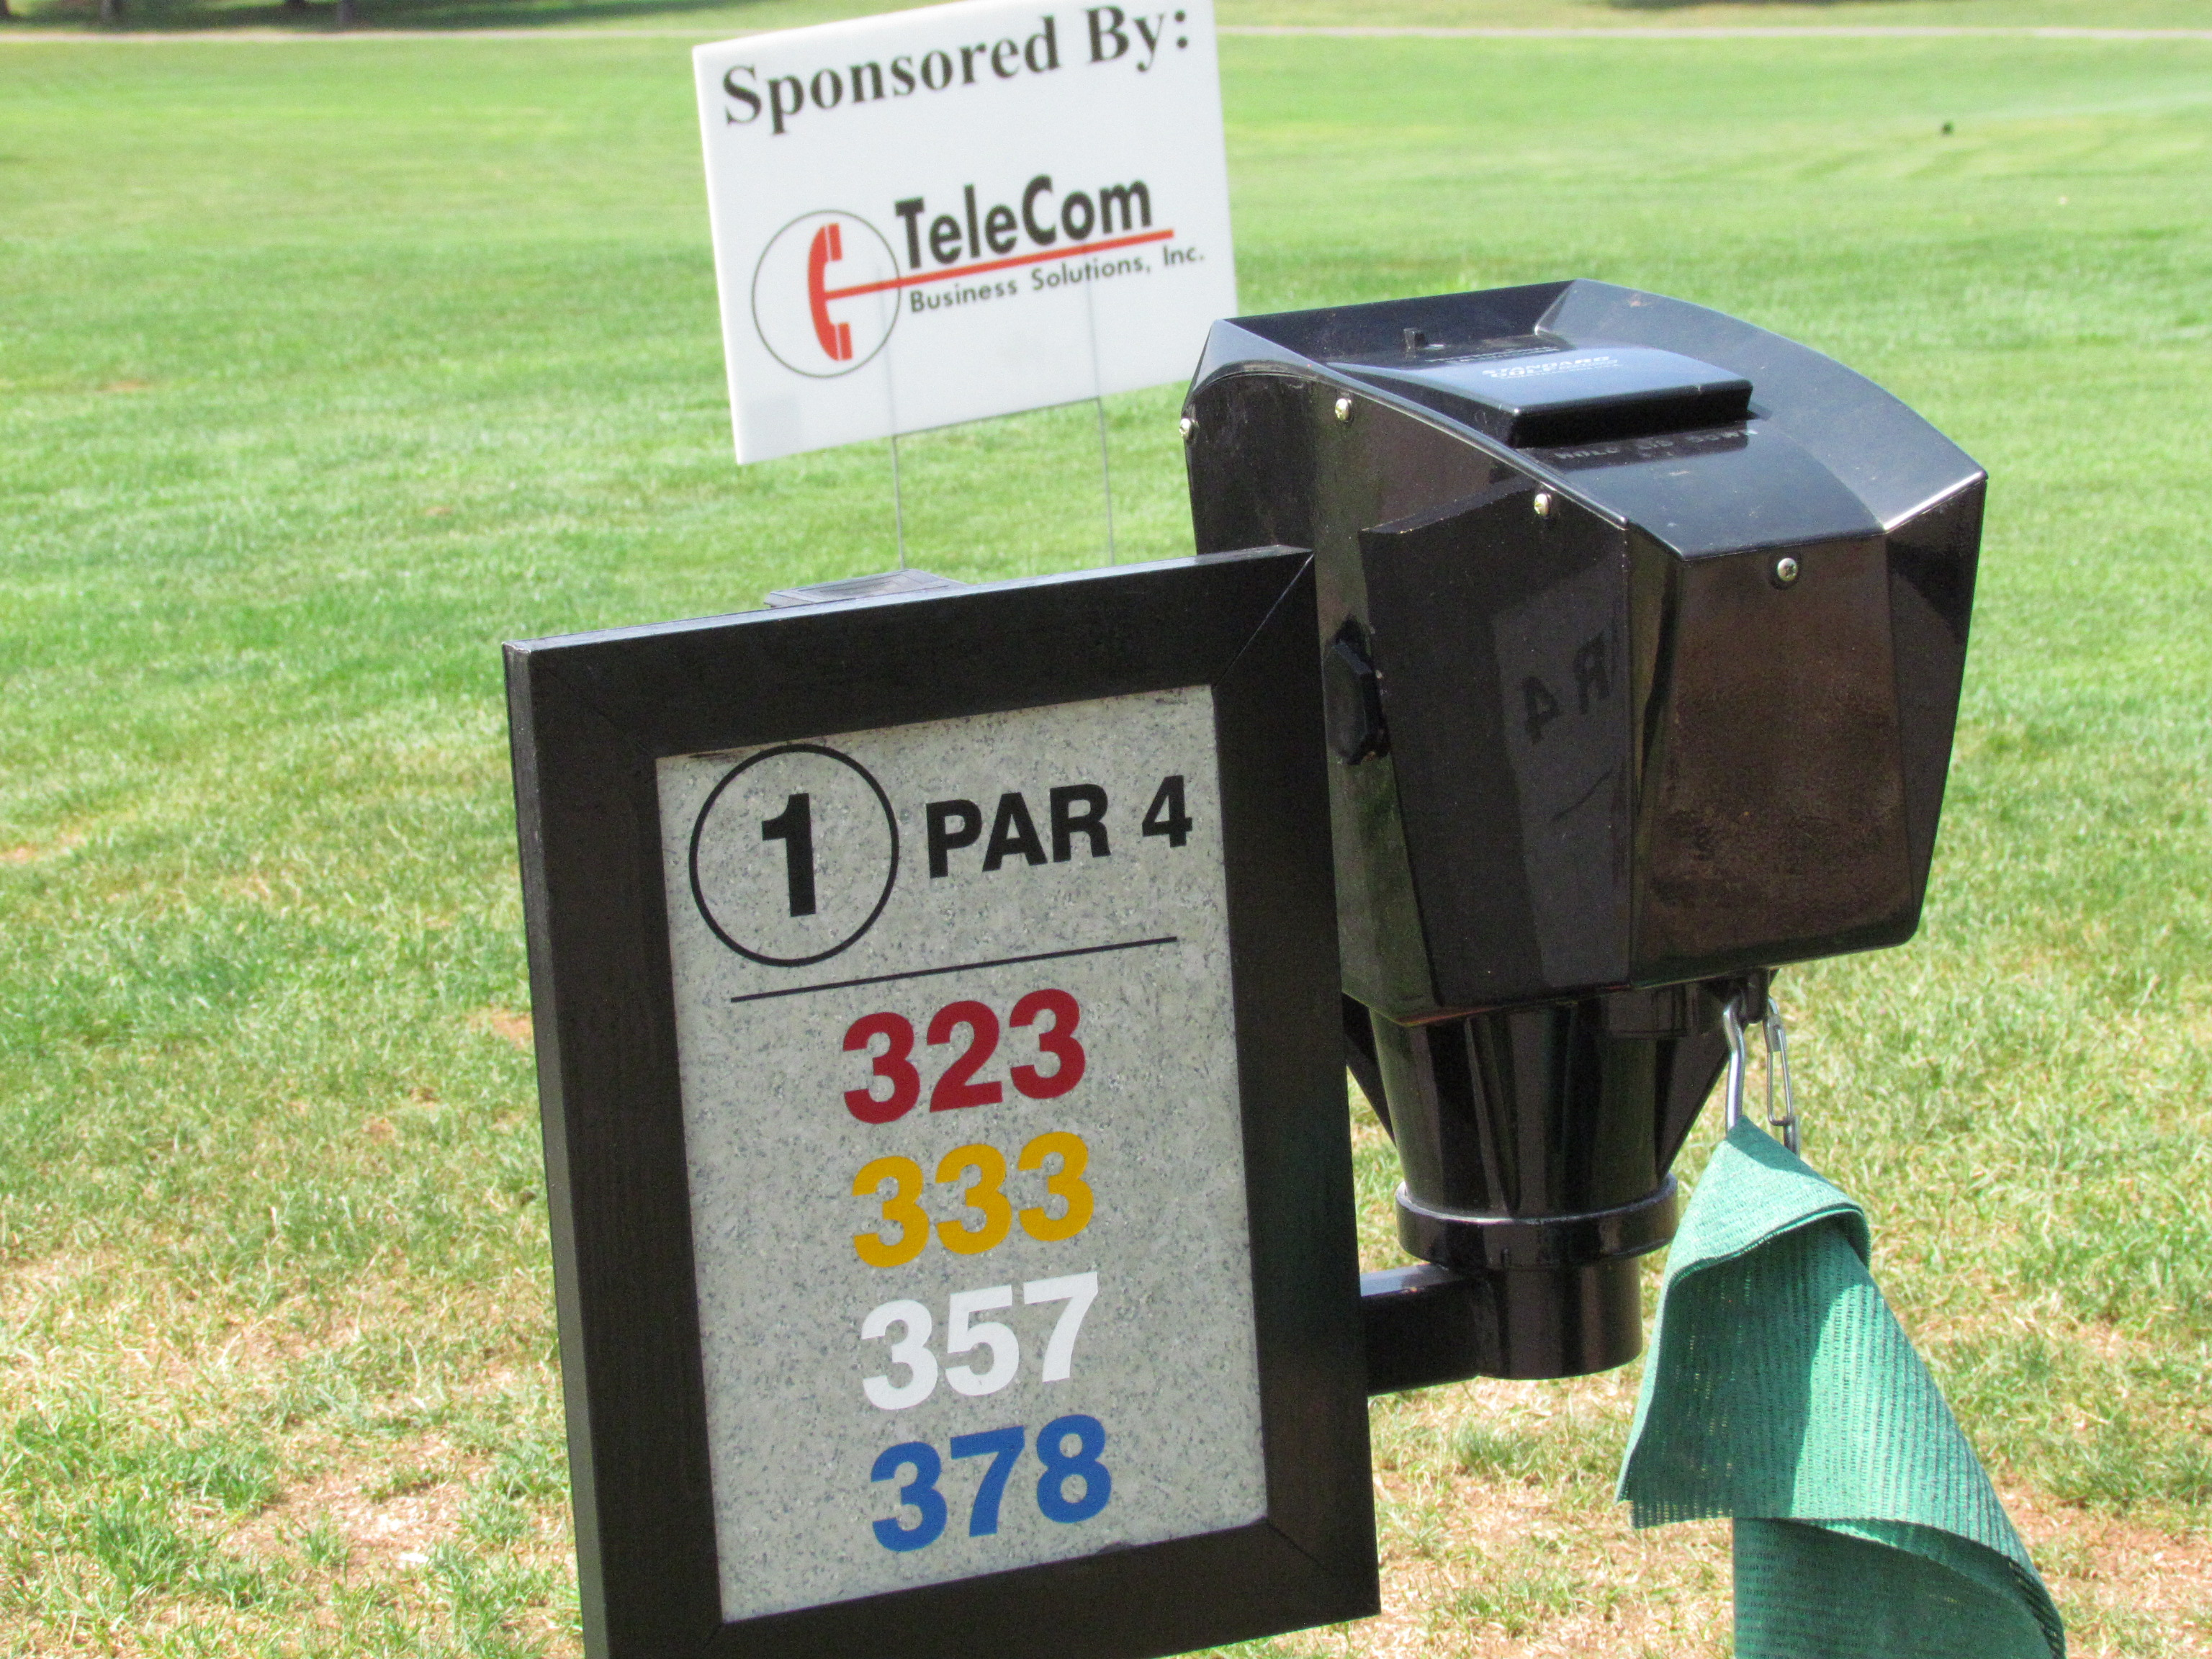 Servants 11th Annual Golf Outing - Default Image of Longest Drive Contests